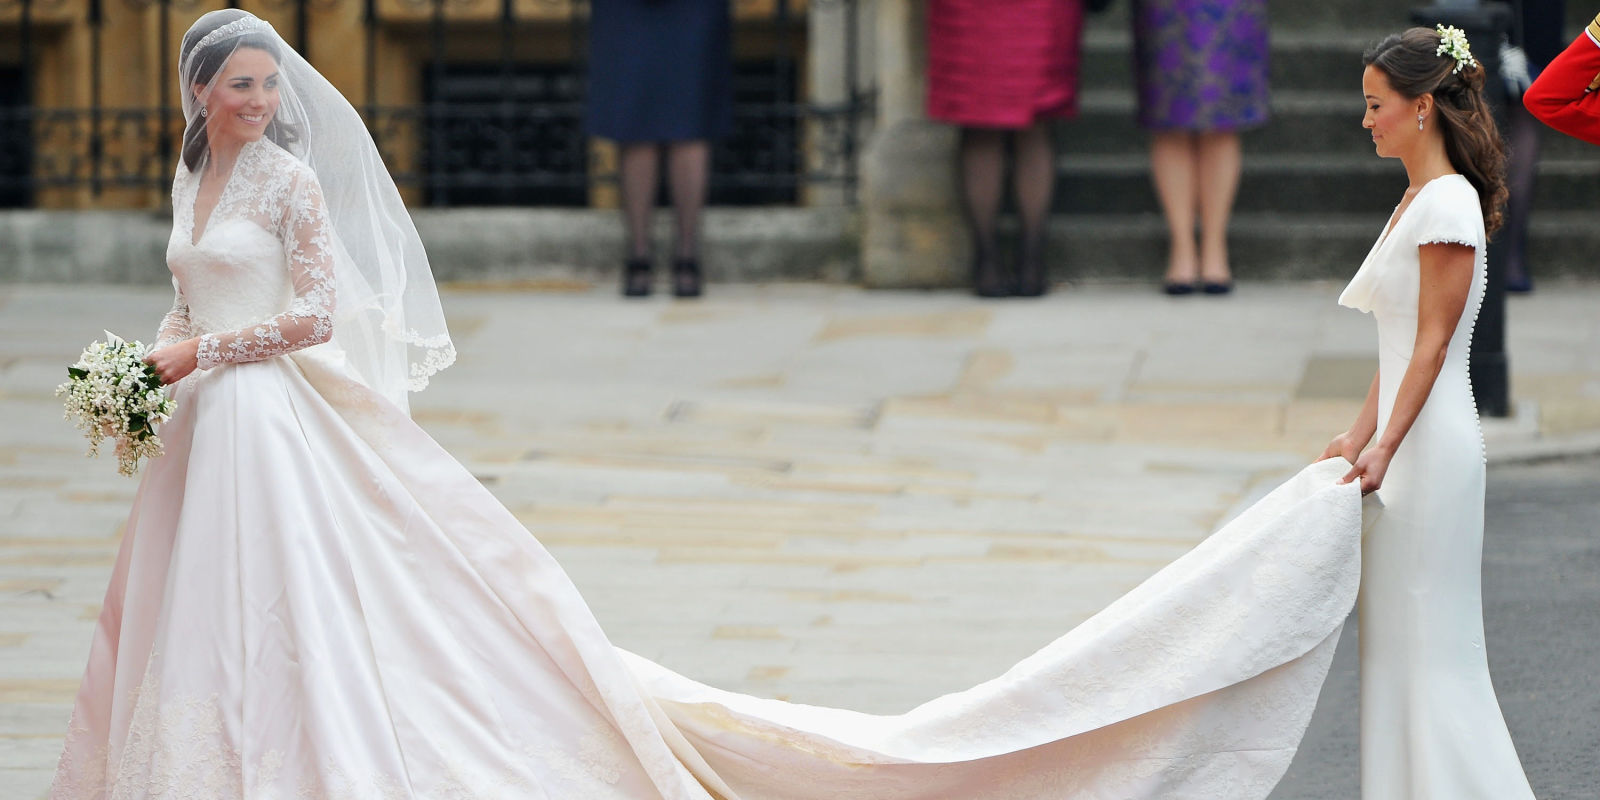 35 Fabulous Things You Didn't Know About Kate Middleton